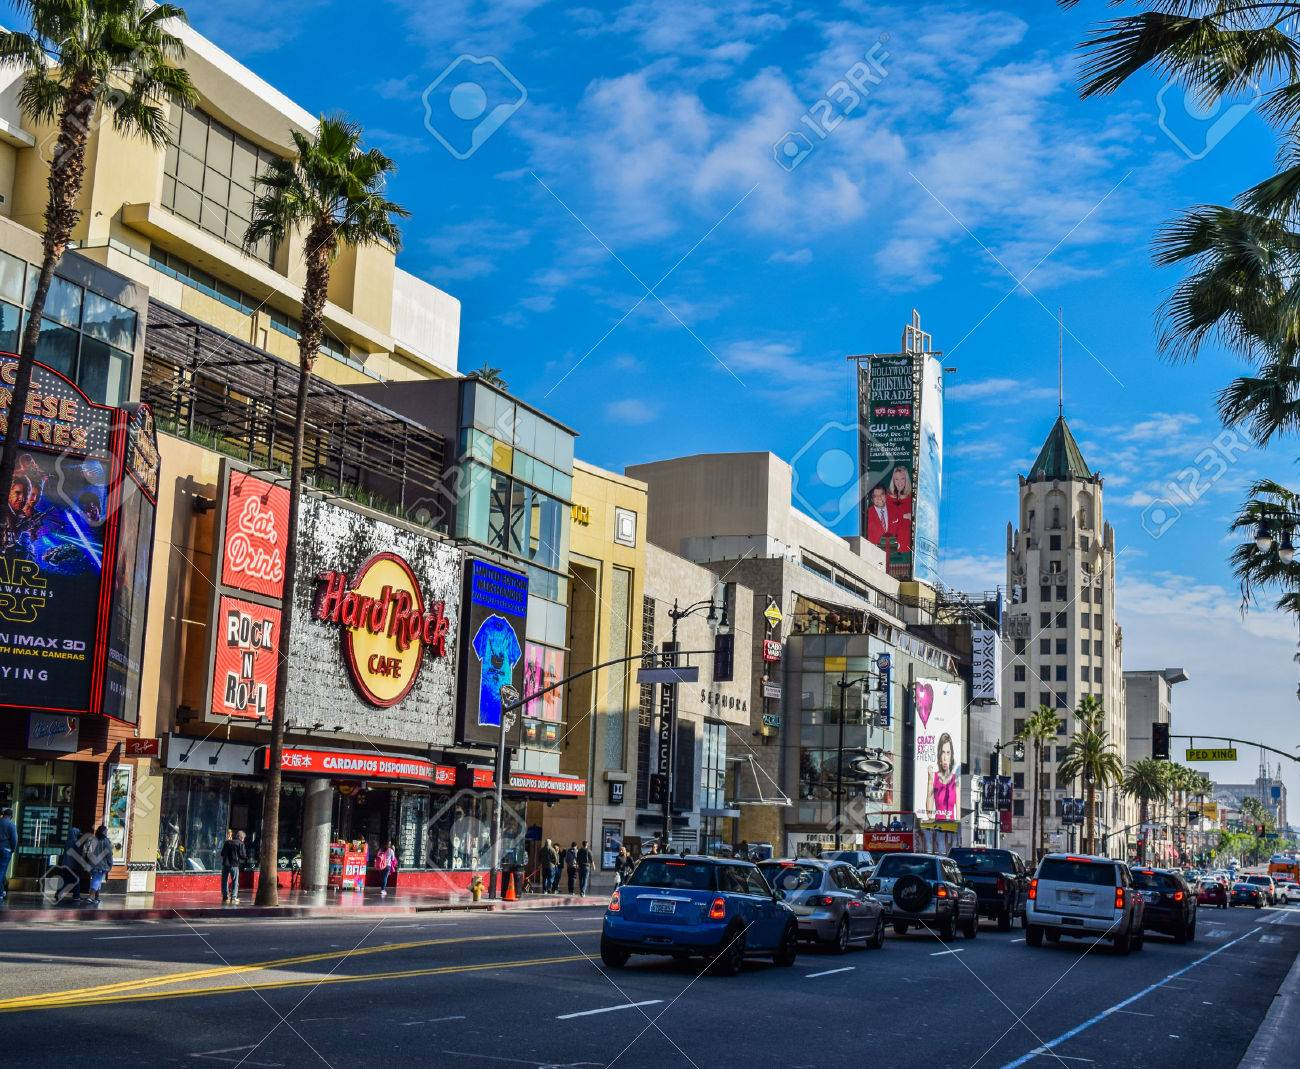 Hollywood Blvd Los Angeles California 01 16 2016 View Of Hollywood Stock Photo Picture And Royalty Free Image Image 57304325